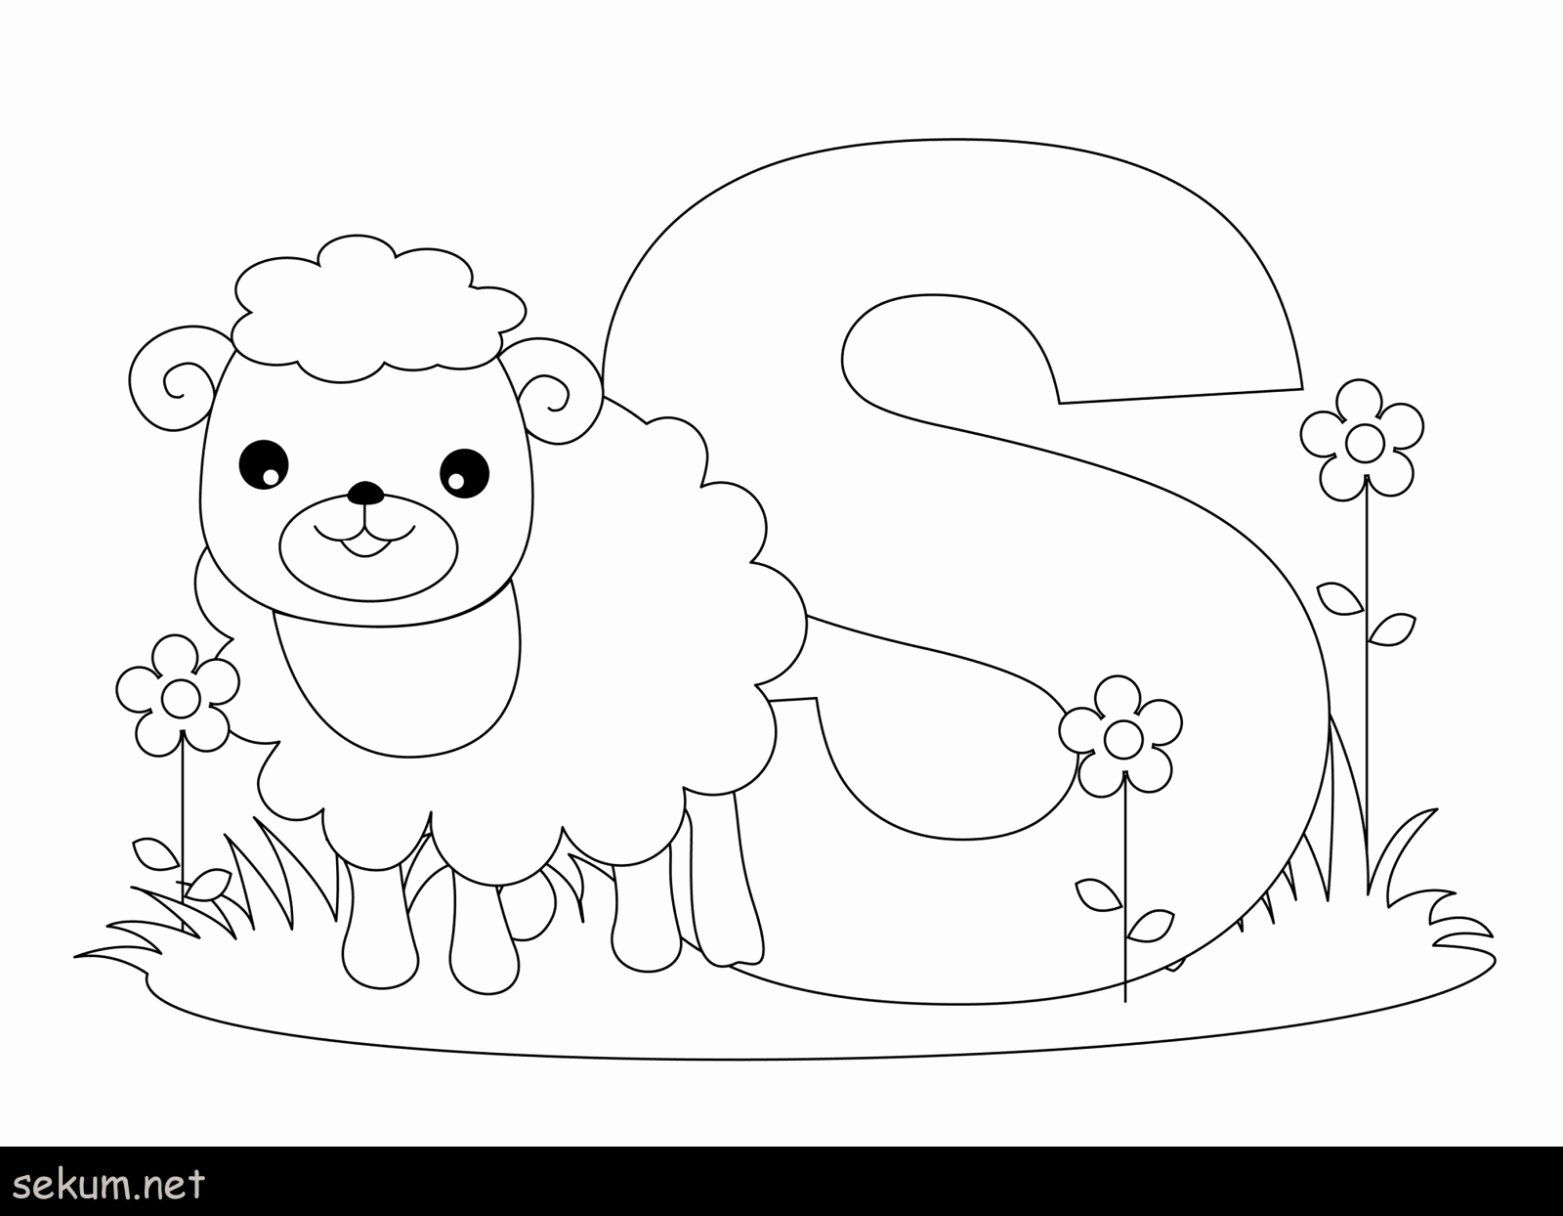 Picture To Coloring Page Converter Luxury Coloring Pages Free